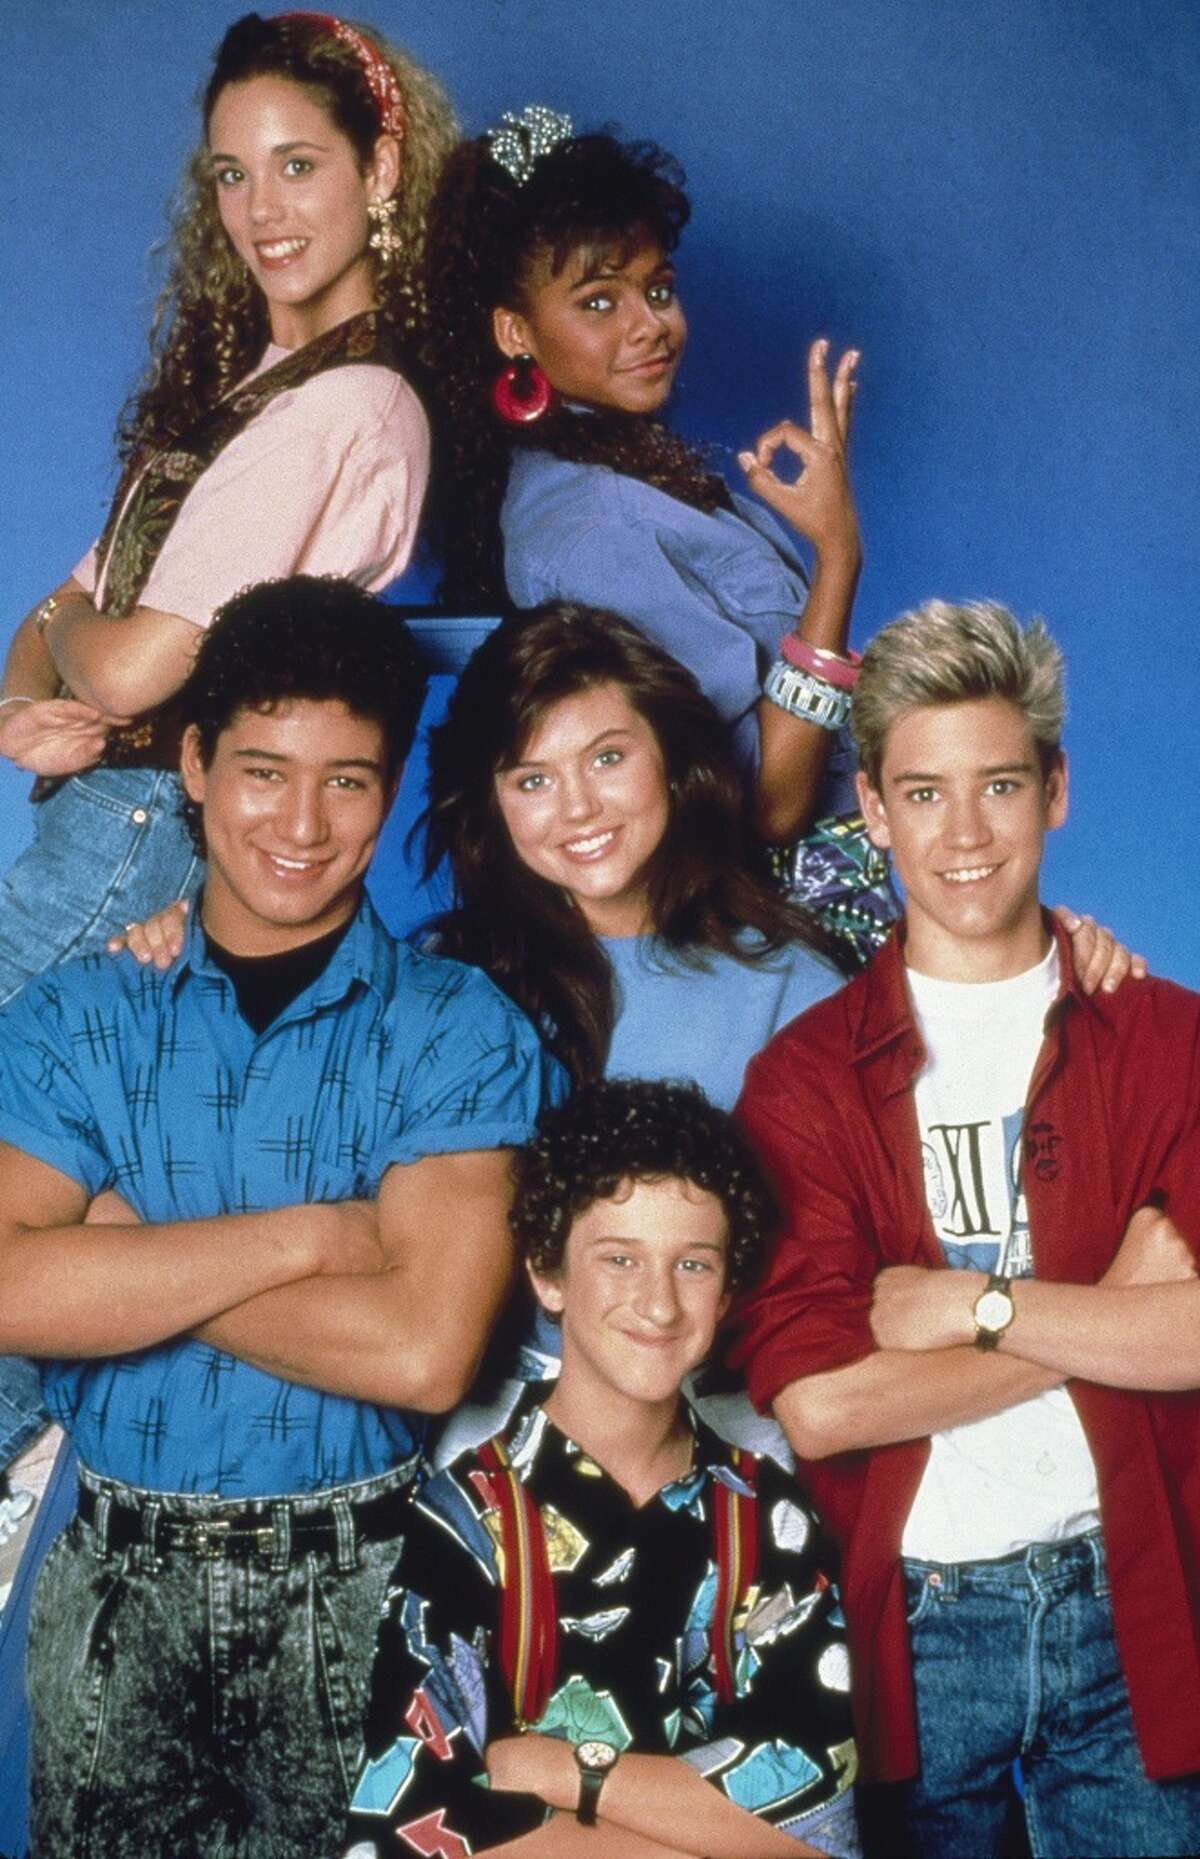 1. 'Saved by the Bell' - Tiffani-Amber Thiessen, Mario Lopez, Elizabeth Berkley, Mark-Paul Gosselaar, Lark Voorhies and Dustin Diamond got their start at Bayside High School as Kelly, Slater, Jesse, Zack, Lisa and Screech, and later went on to varying levels of success. The final episode aired in May of 1993, and was followed later that year by the spinoff,